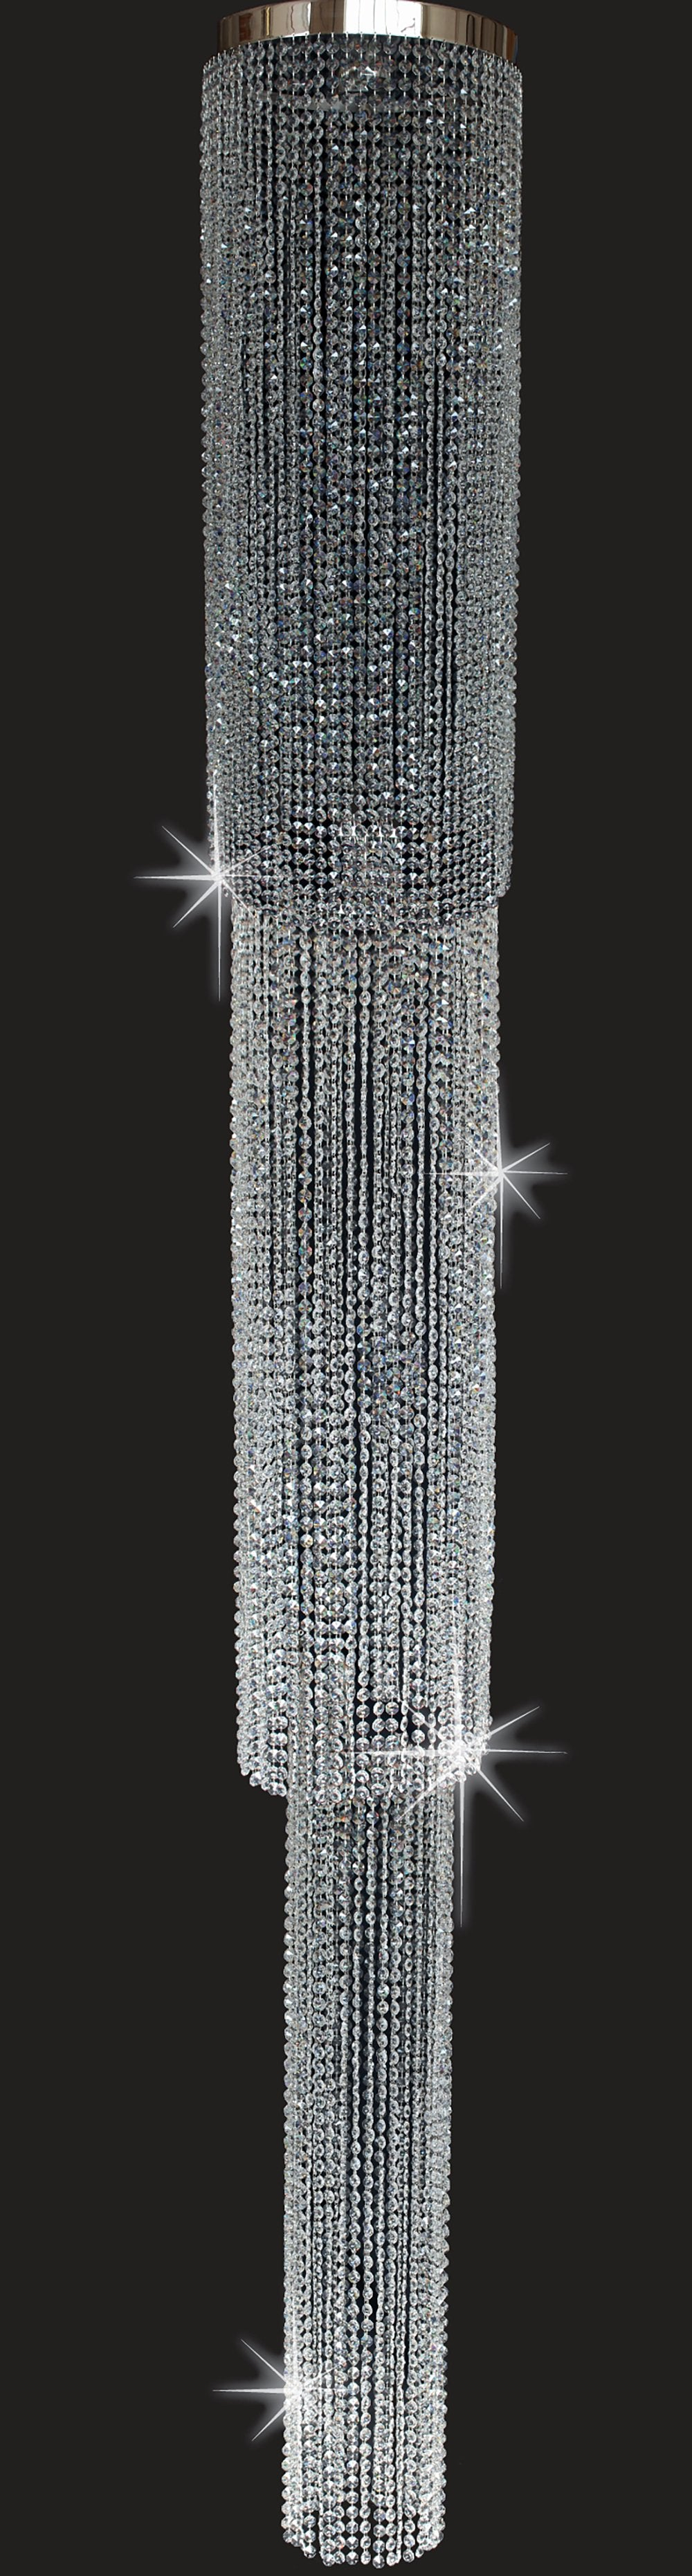 Forestdale Tripple Tiered 3 Metre Crystal Chandelier - ID 8100